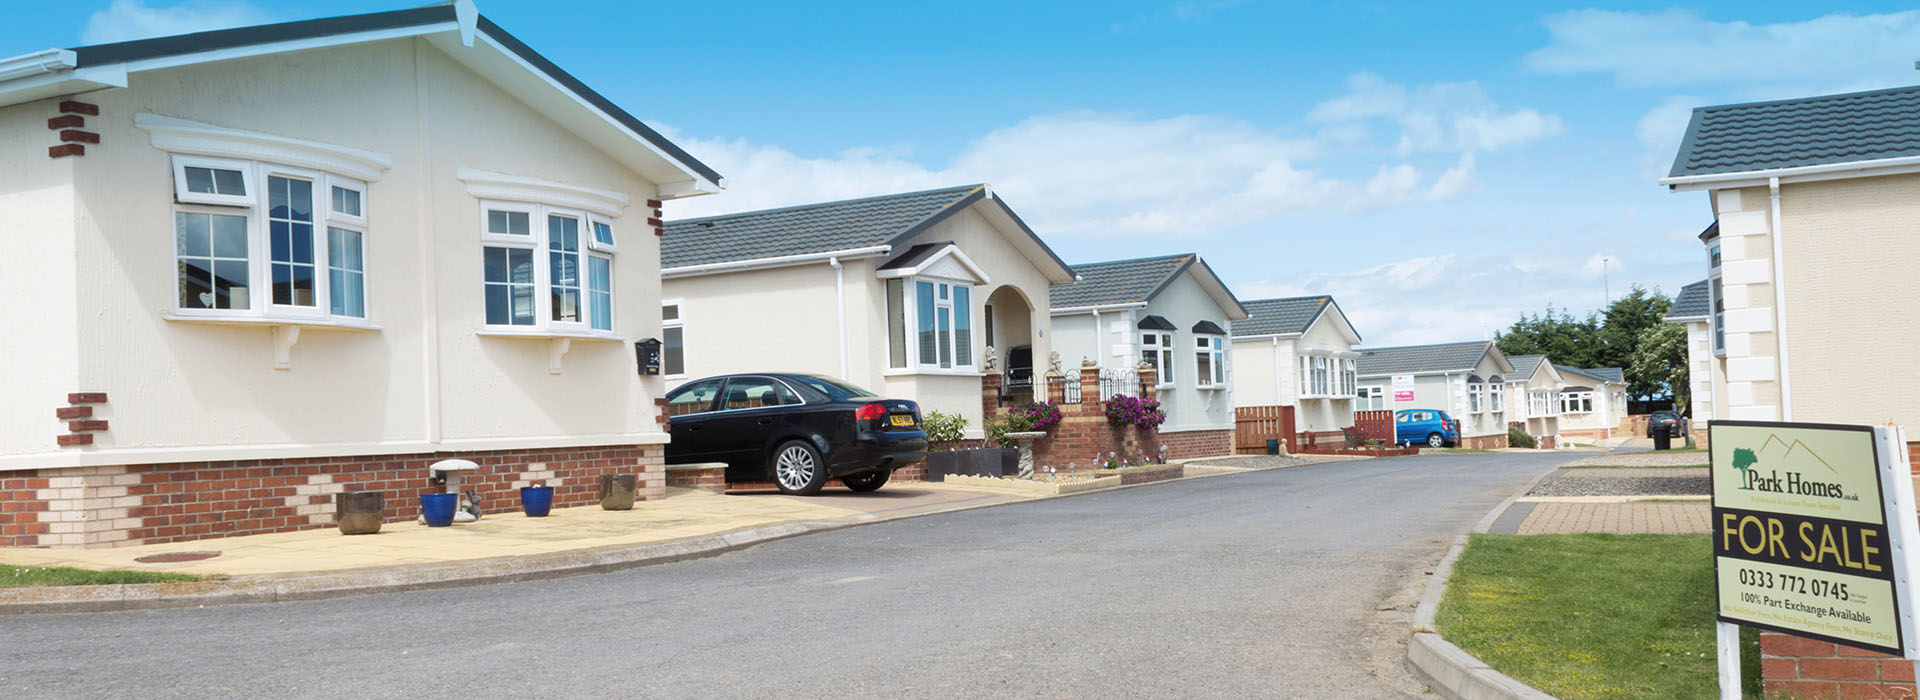 Seaview Holiday Homes for Sale in Hartlepool, Durham